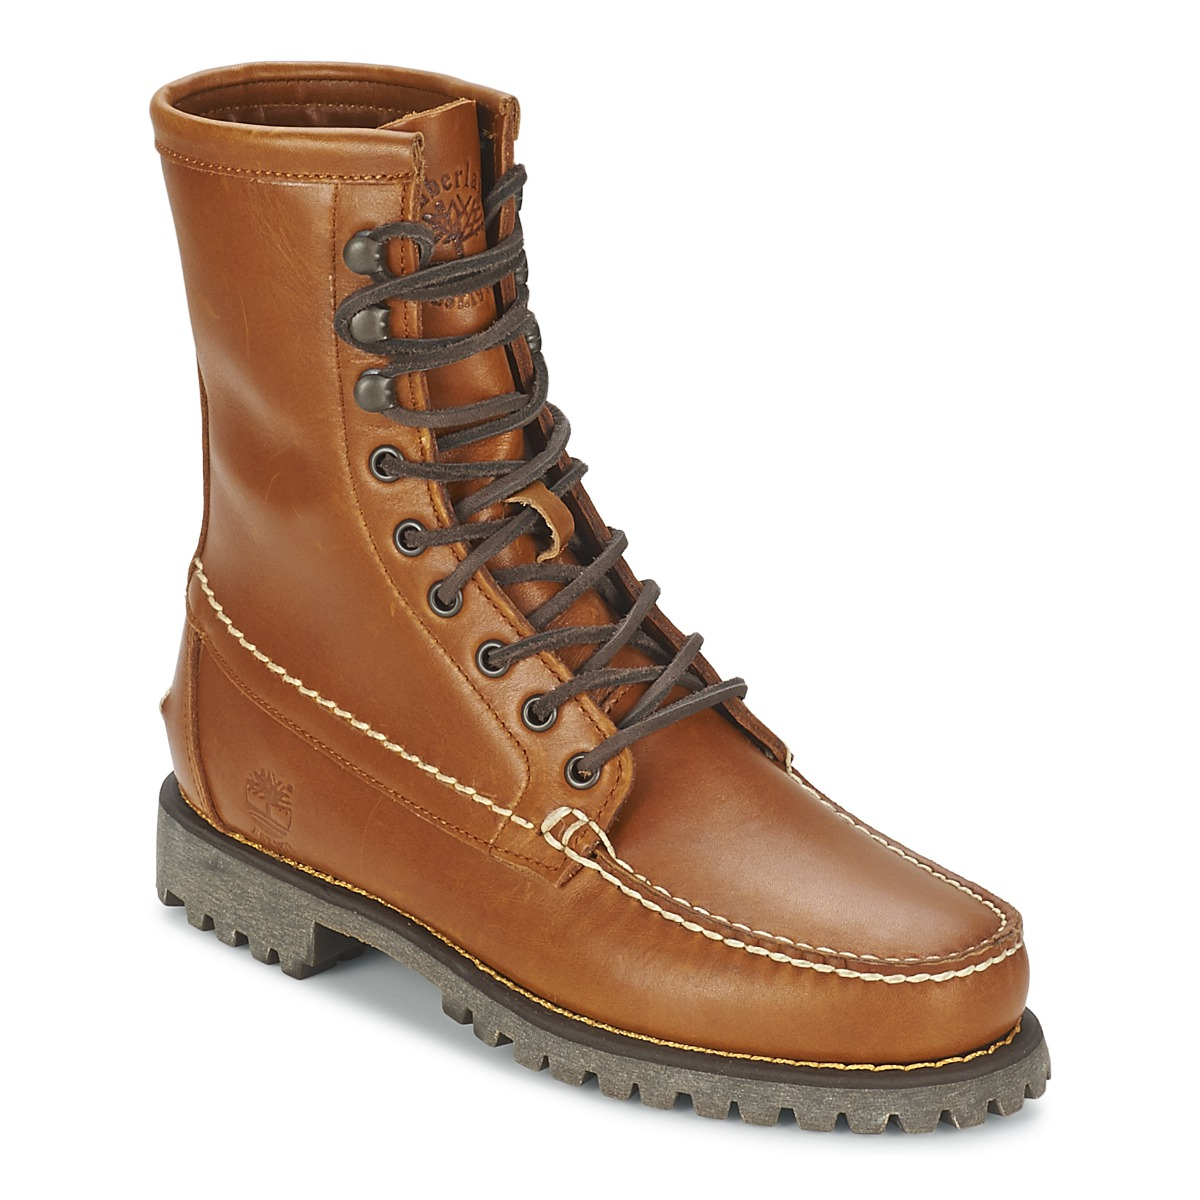 Timberland AUTHENTICS 8 IN RUGGED HANDSEWN Terre cuite